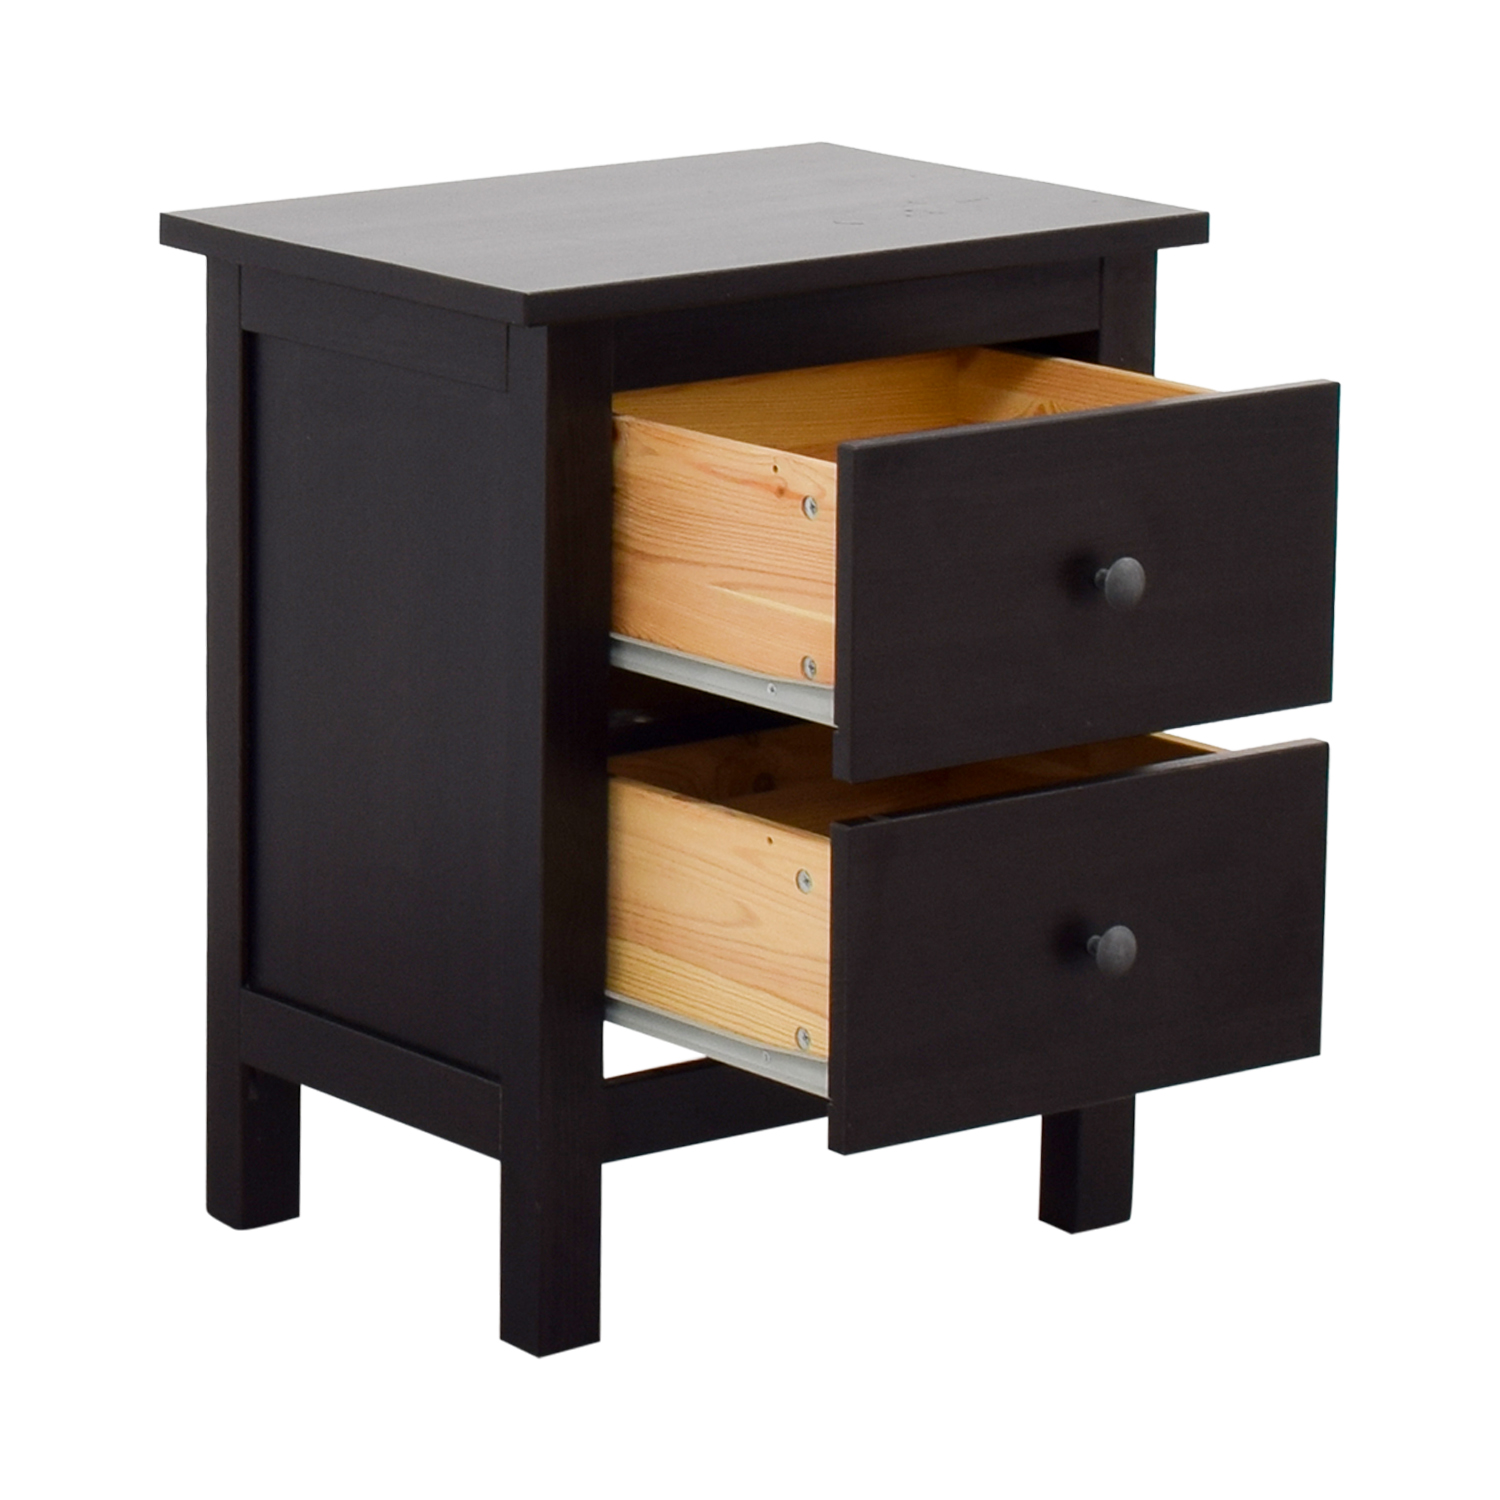 Ikea Hemnes Schuhbank 60 Off Ikea Ikea Hemnes Two Drawer Chest Tables